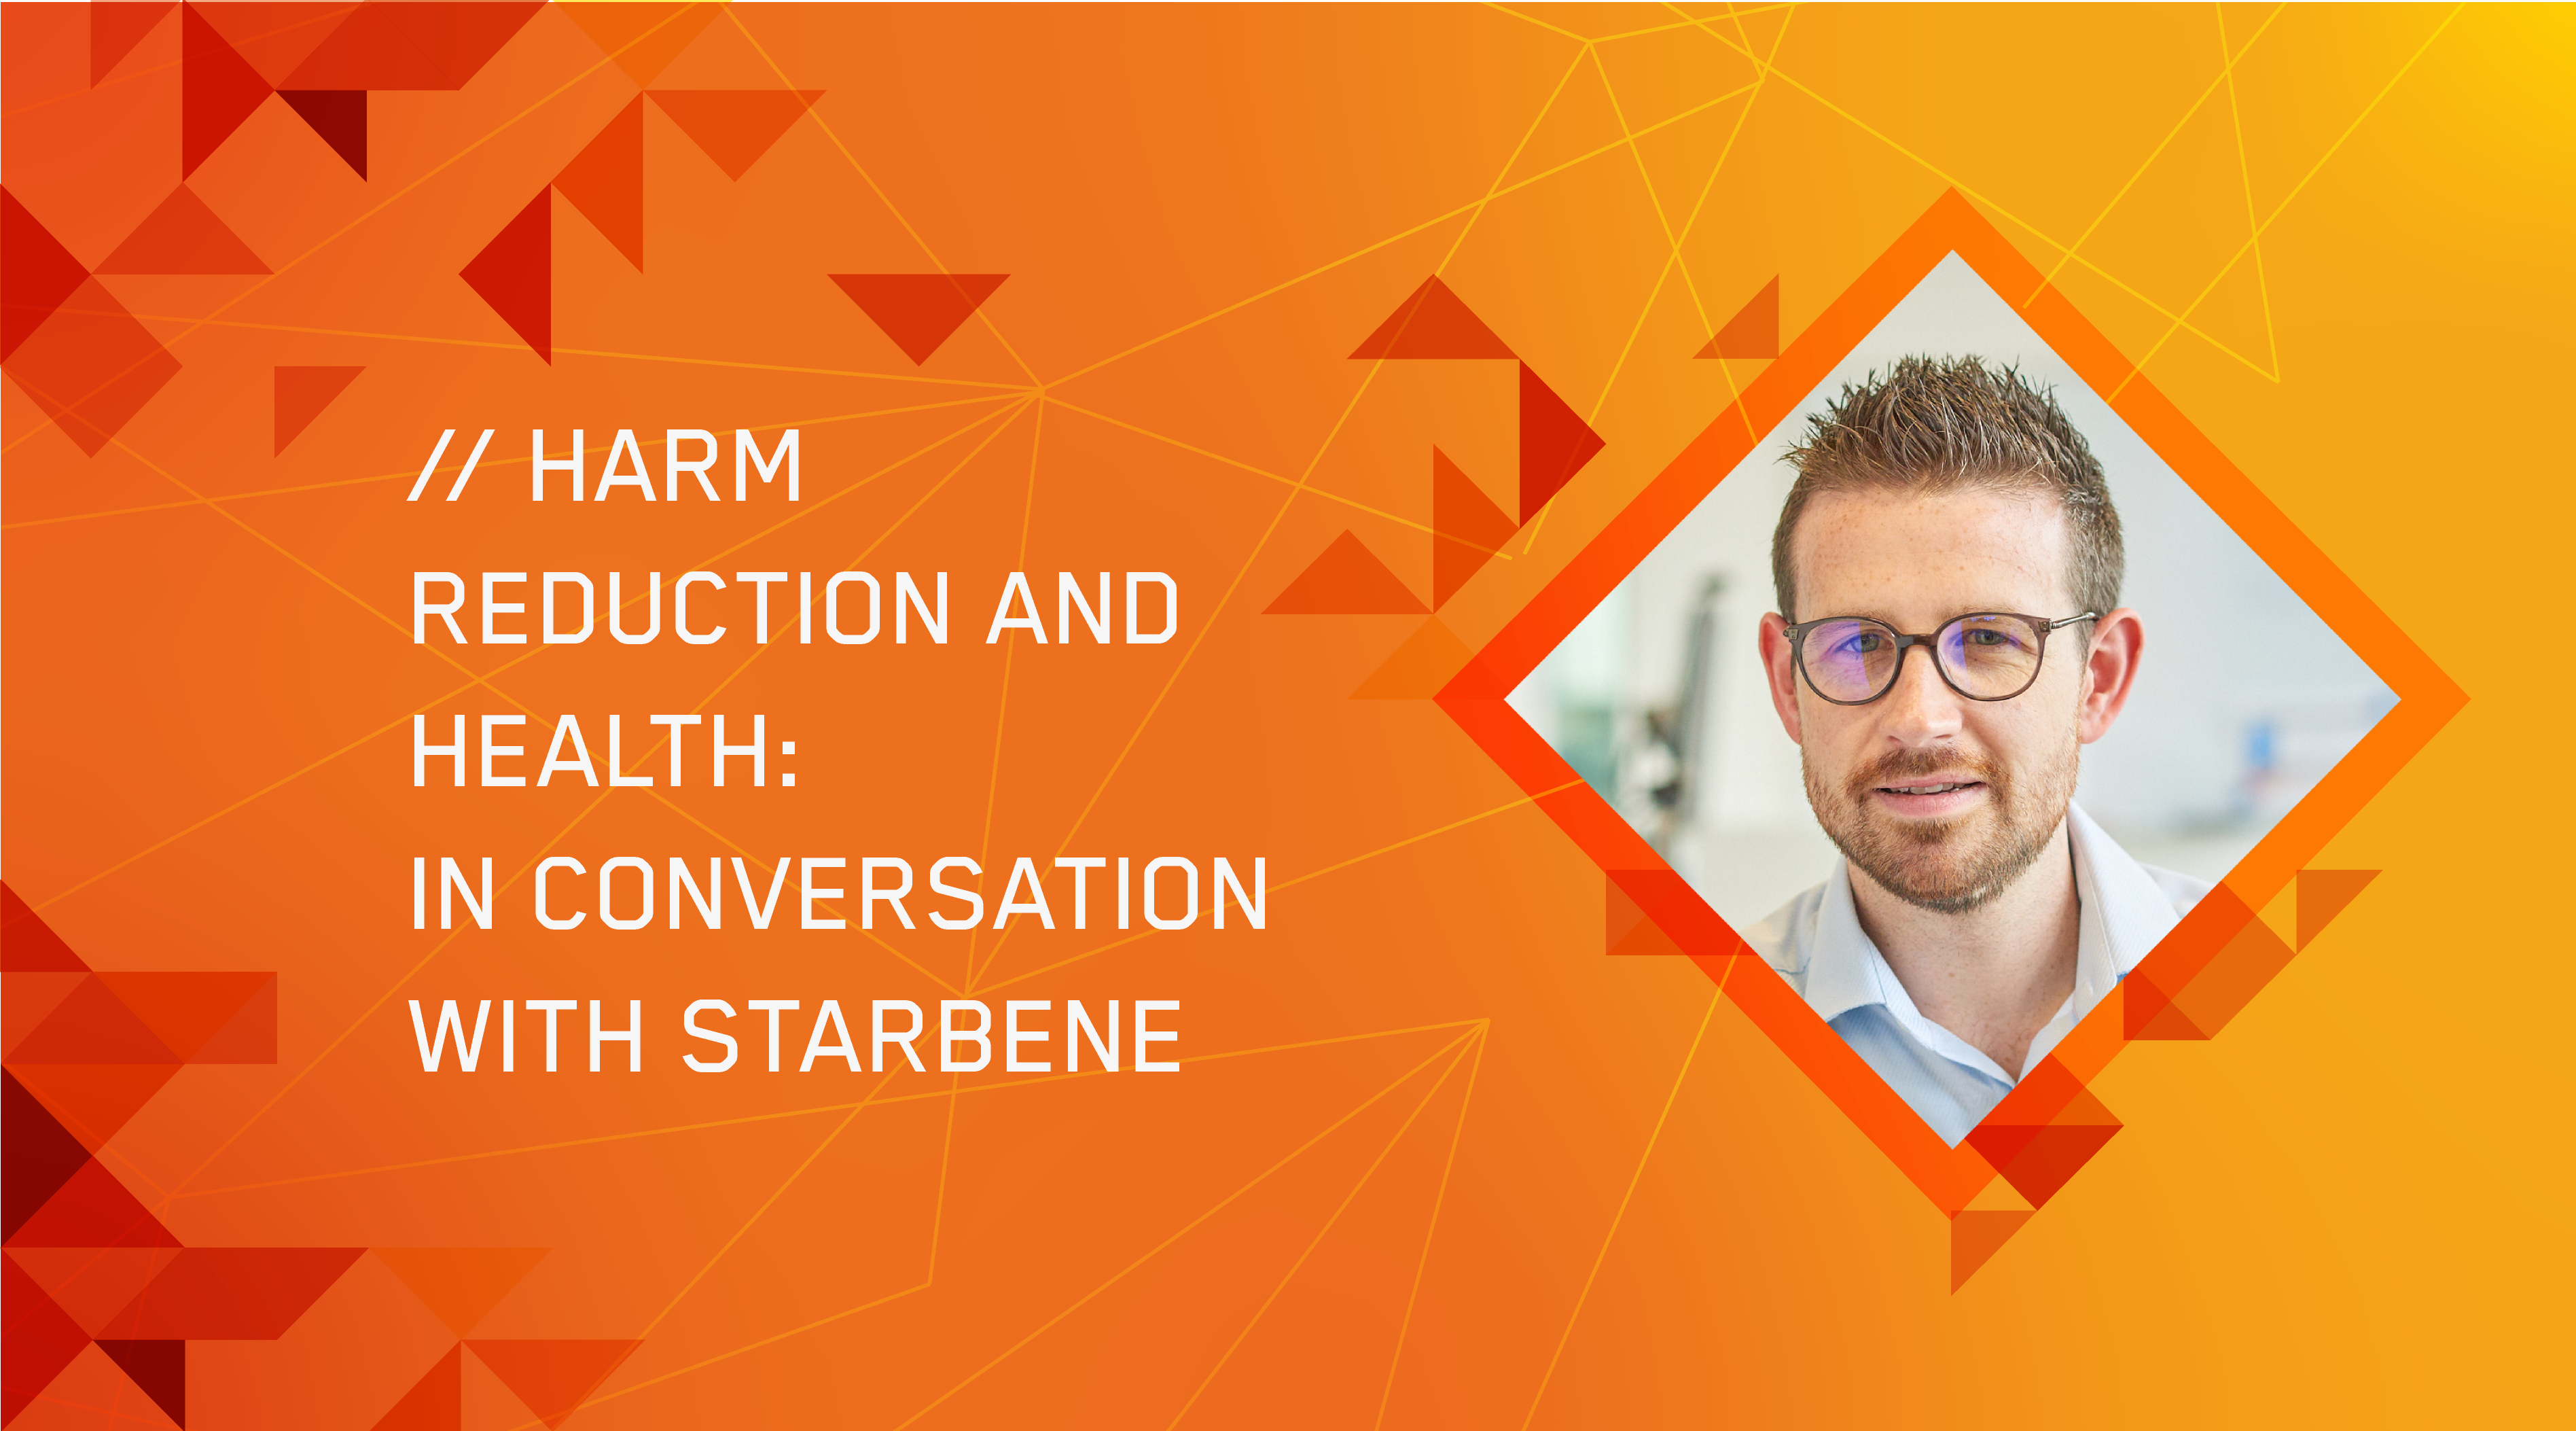 Harm Reduction and Health: In Conversation with Starbene